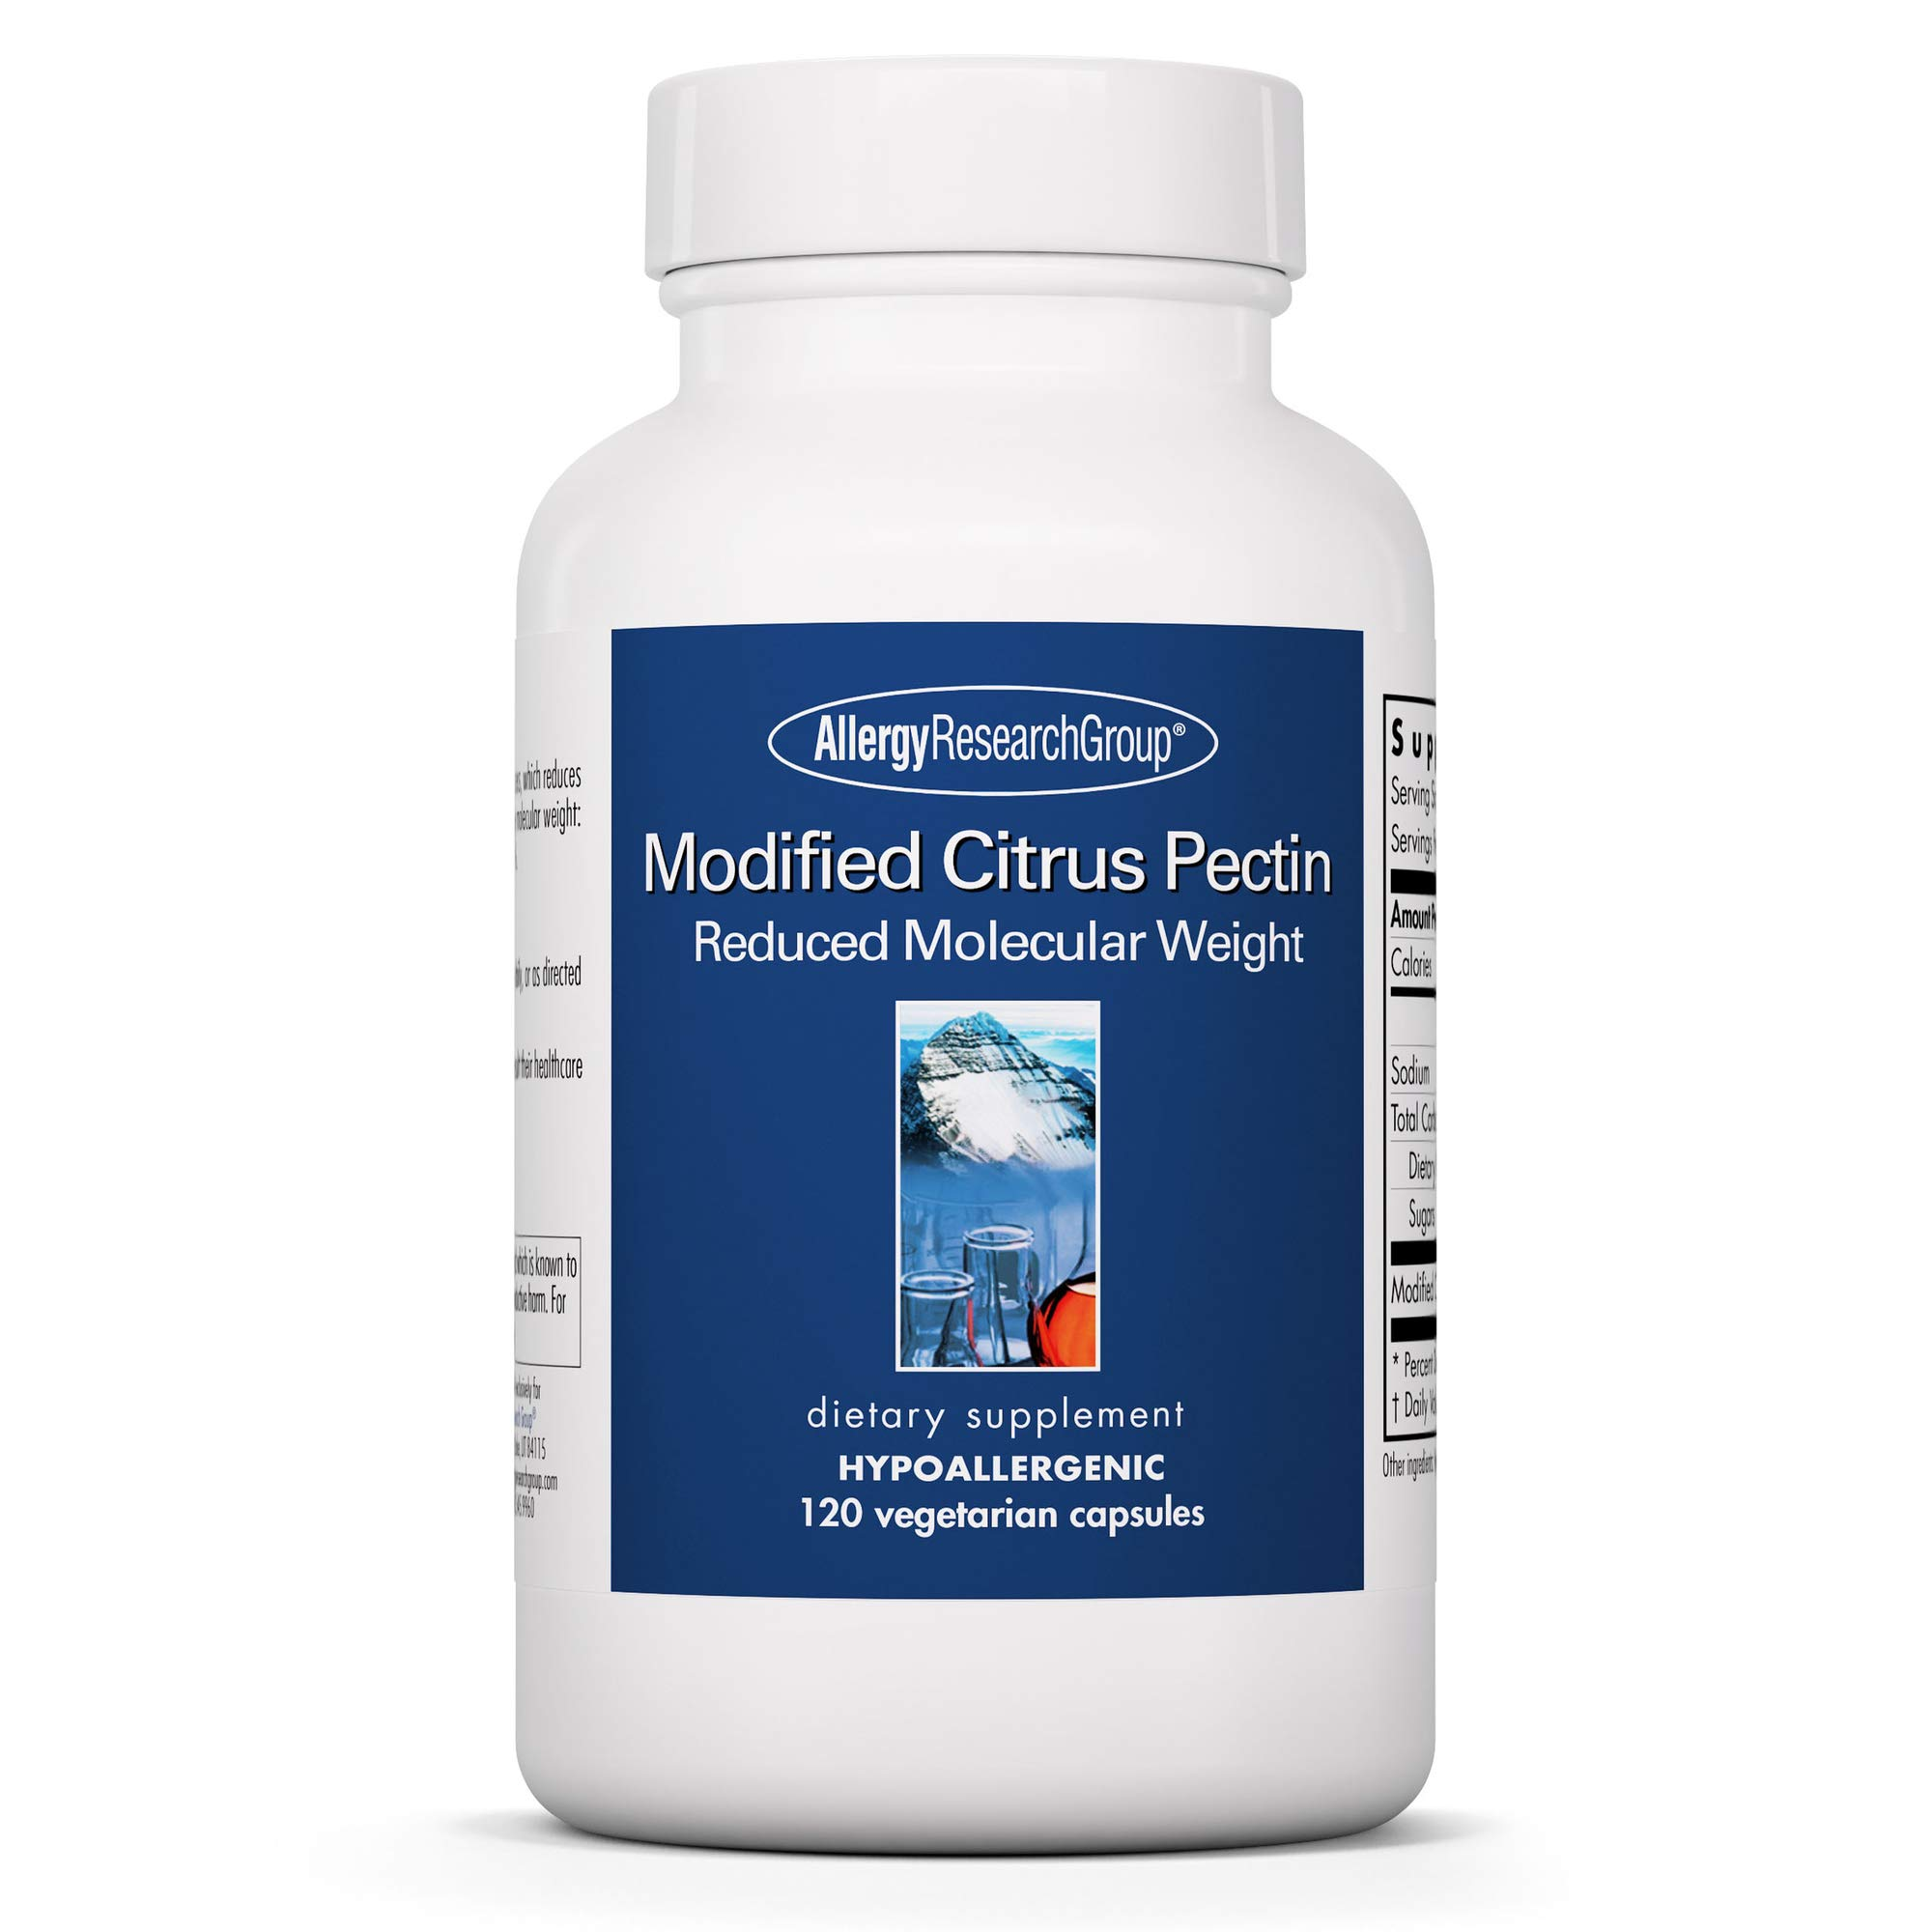 Allergy Research Group - Modified Citrus Pectin - Low Molecular Weight - Cleansing - 120 Vegetarian Capsules